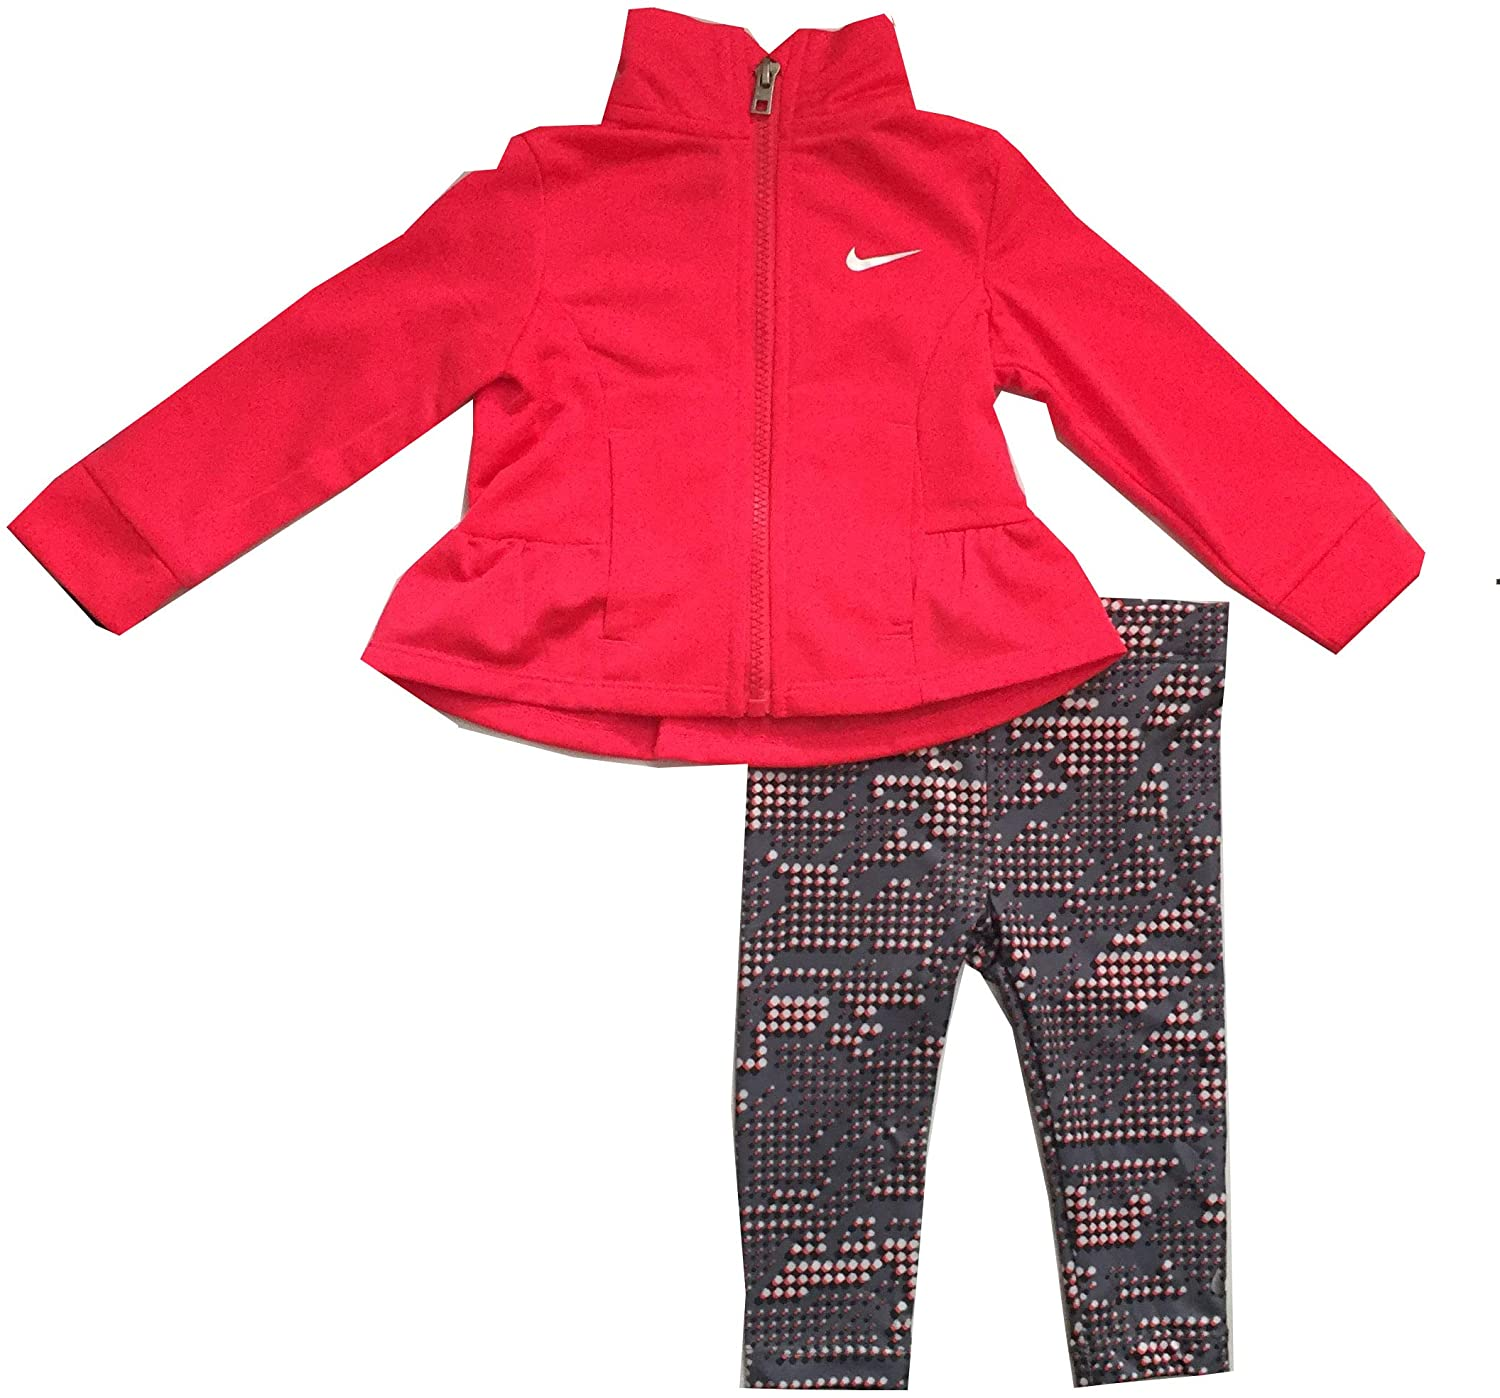 Nike Infant Girls 2 Piece Jacket and Pants Set Pink/Cool Gray Size 12 Months